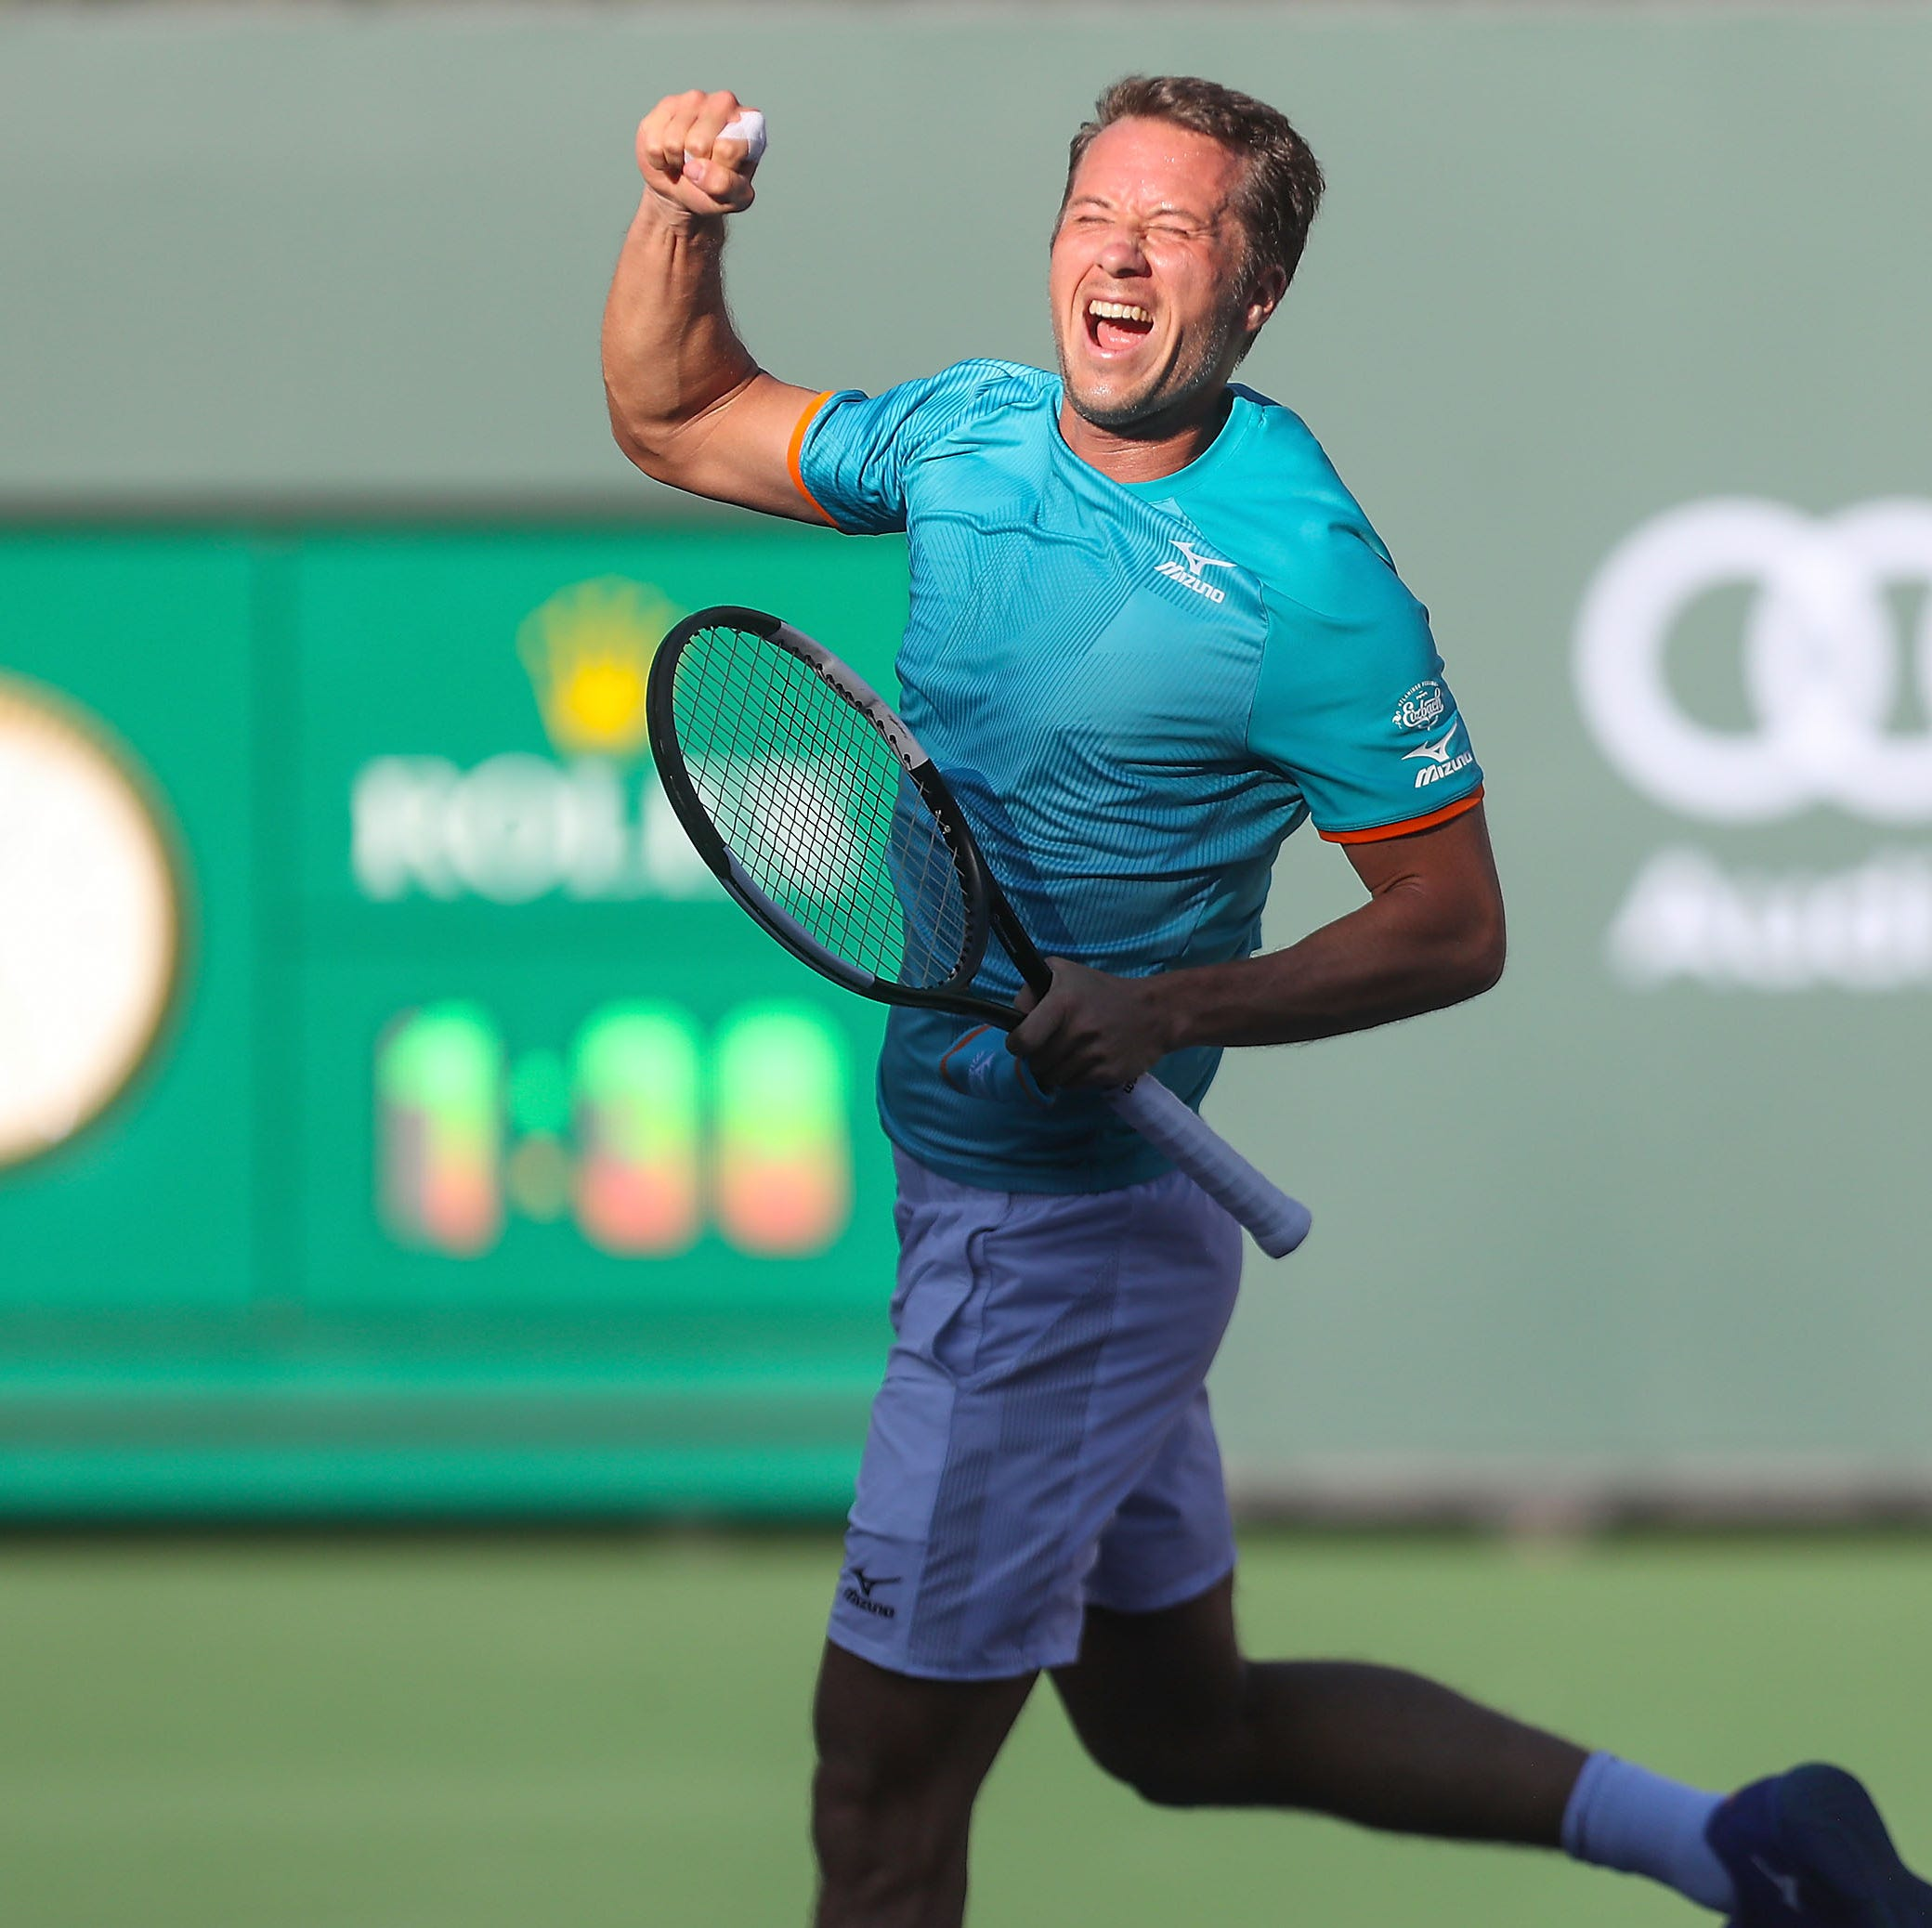 Players were asked to choose their walkout music at Indian Wells. What did they pick?